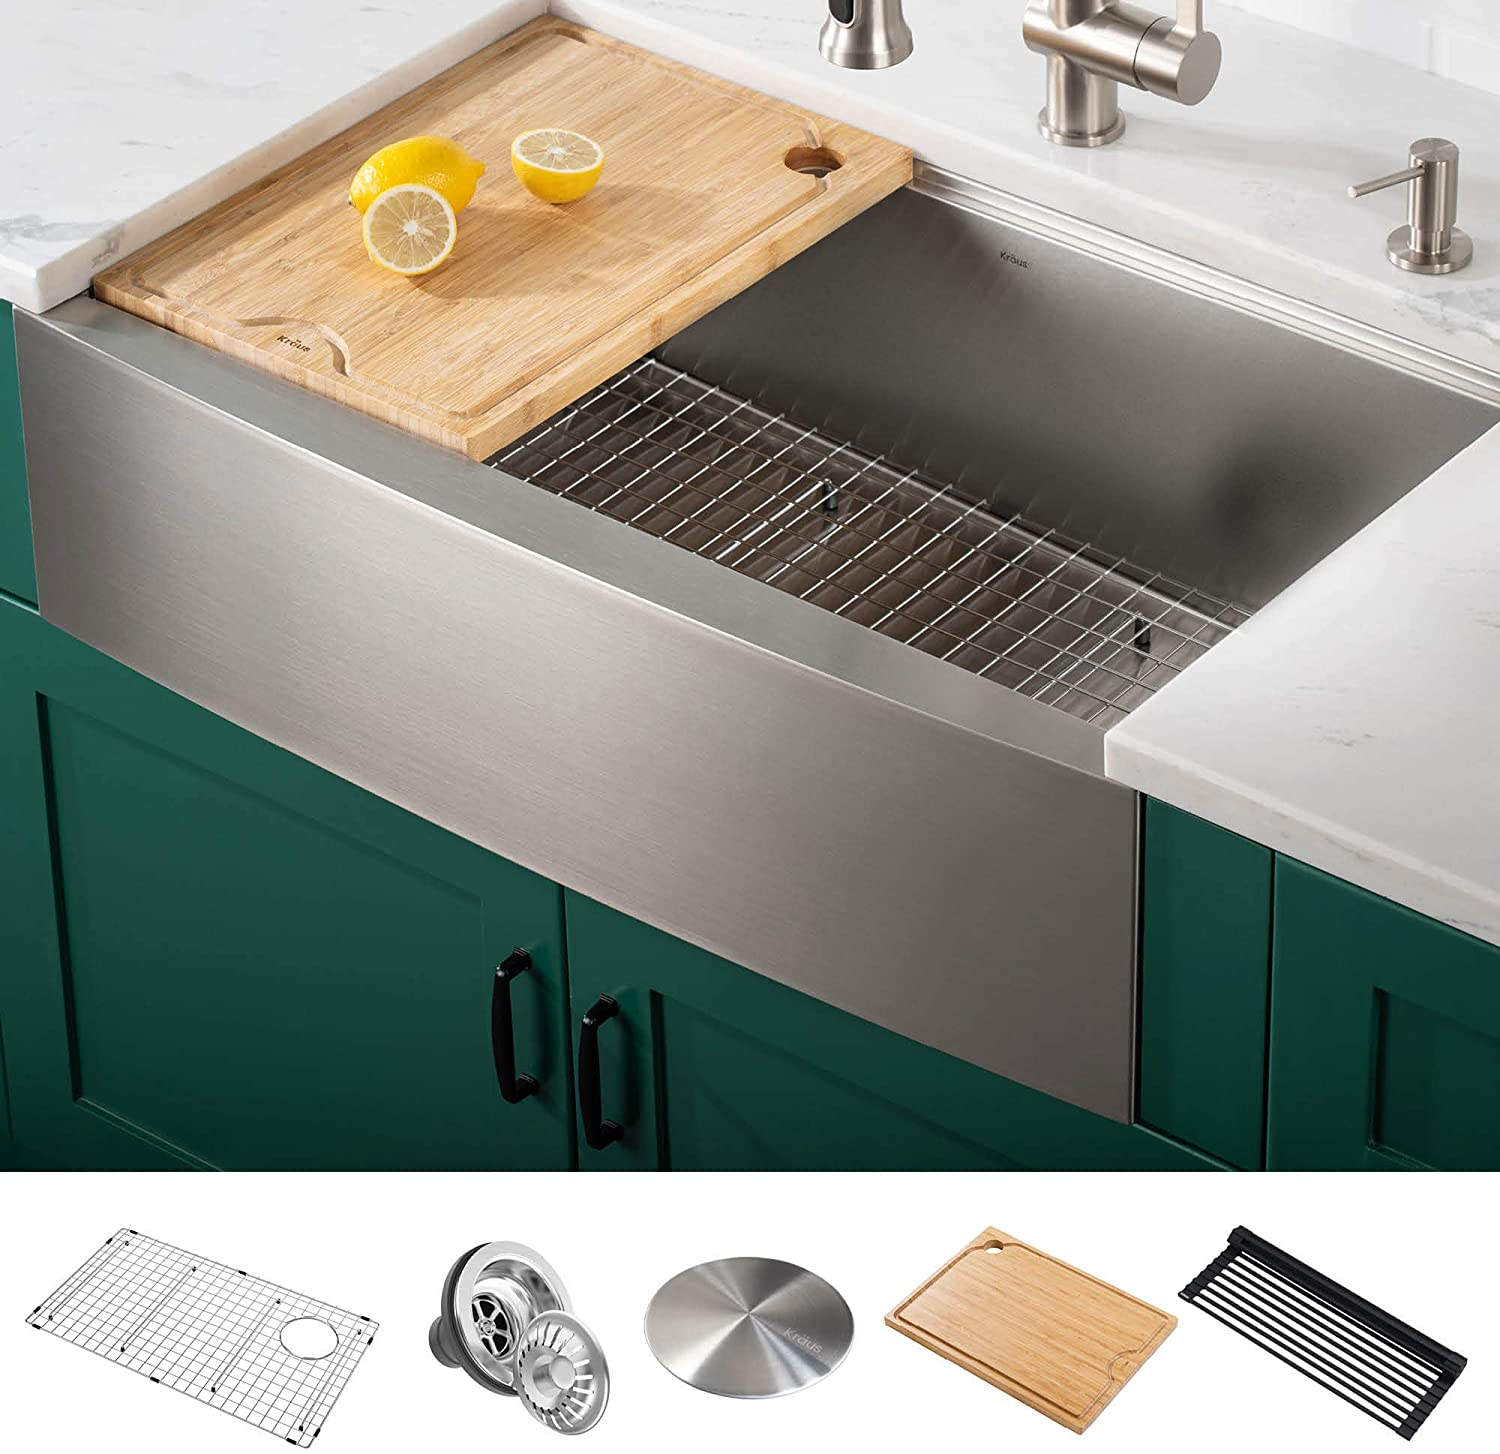 Farmhouse Single Bowl Stainless Steel Kitchen Sink with Integrated Ledge and Accessories (Pack of 5), 33 Inch Rounded Apron Front